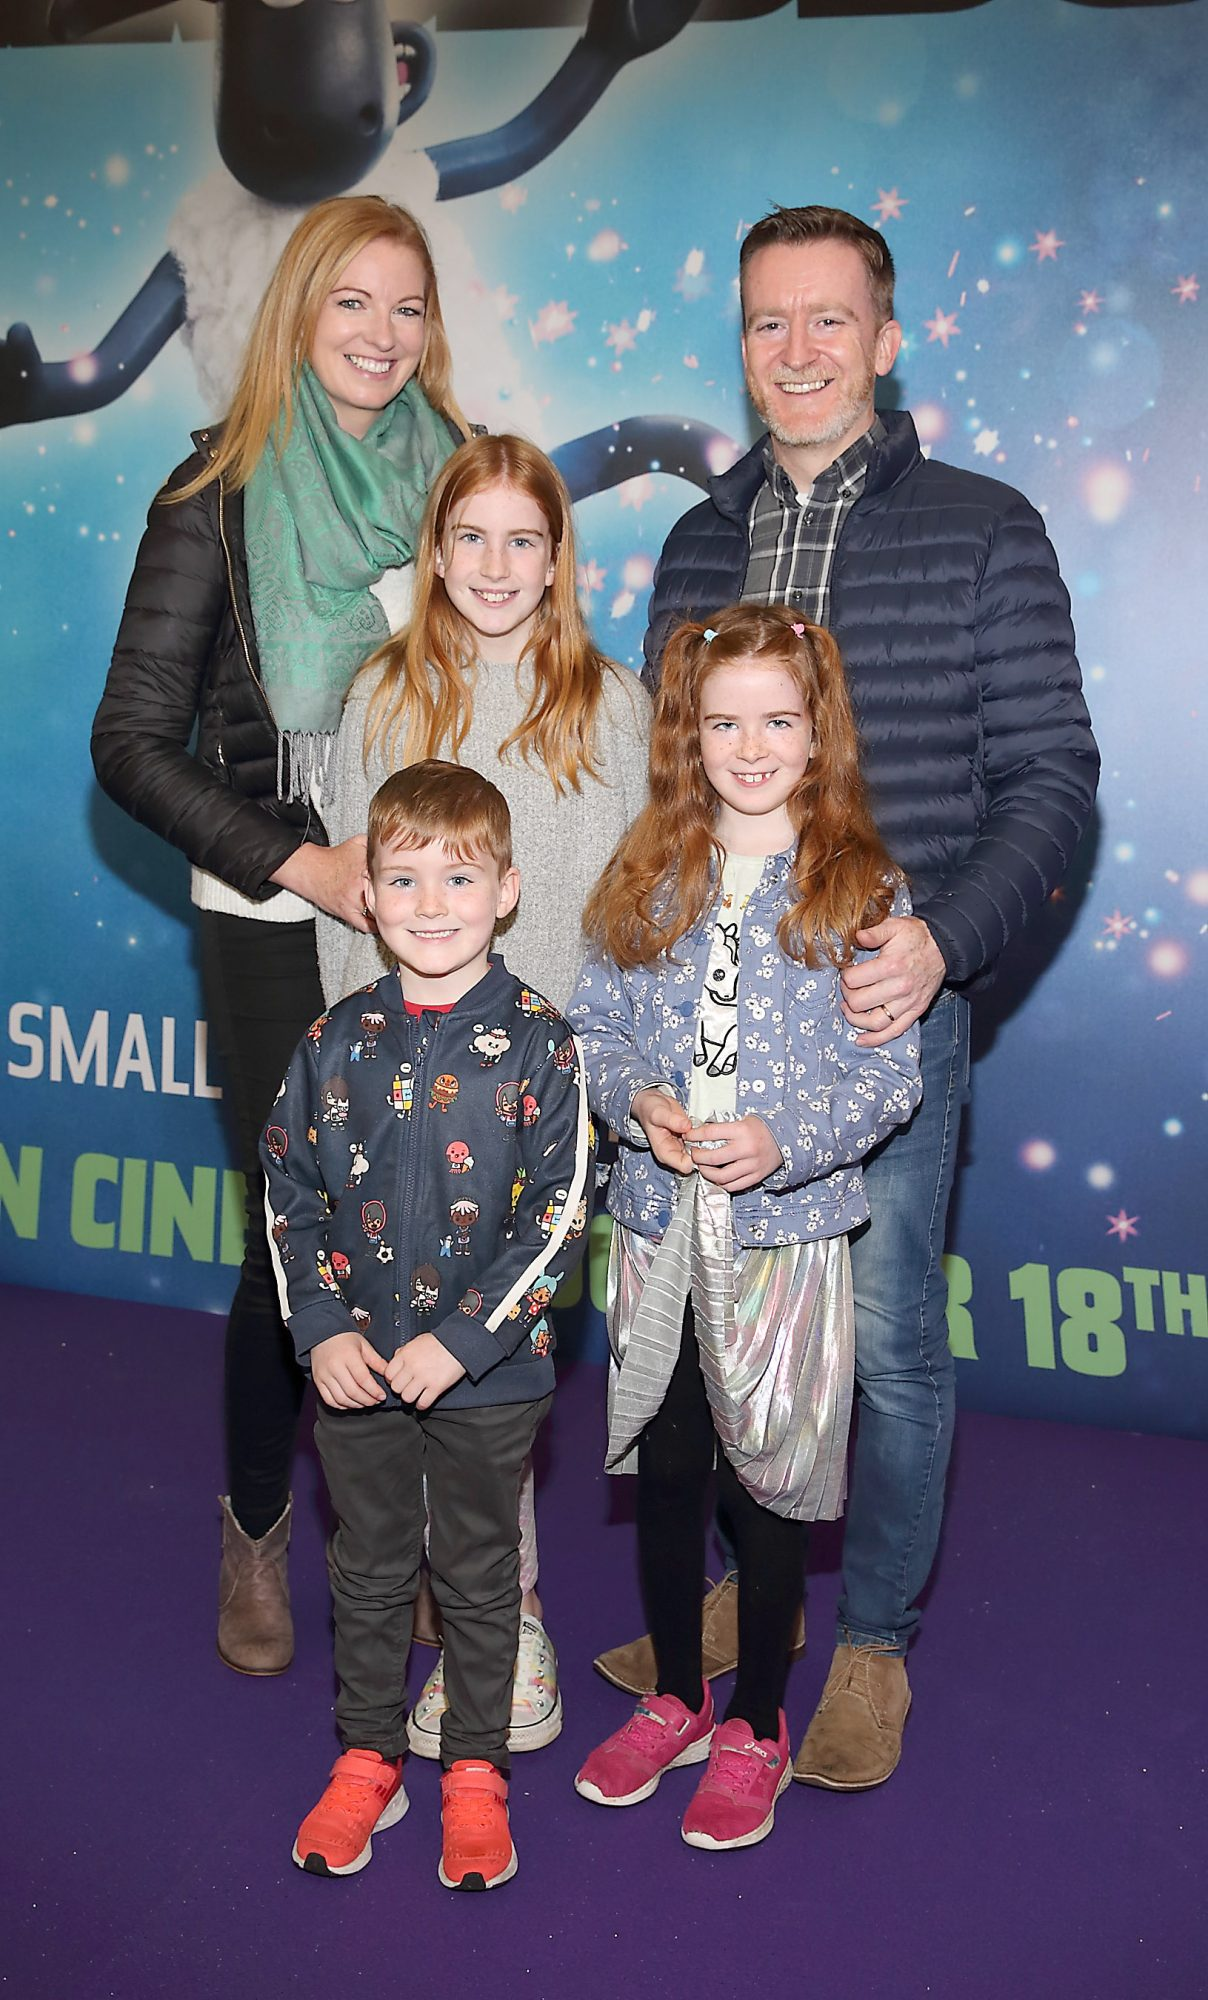 Yvonne O'Shea, Stephen O'Shea, Darcy O'Shea, Judy O'Shea and Milo O'Shea at the special preview screening of Shaun the Sheep at the Odeon Cinema In Point Square, Dublin.  Pic: Brian McEvoy Photography